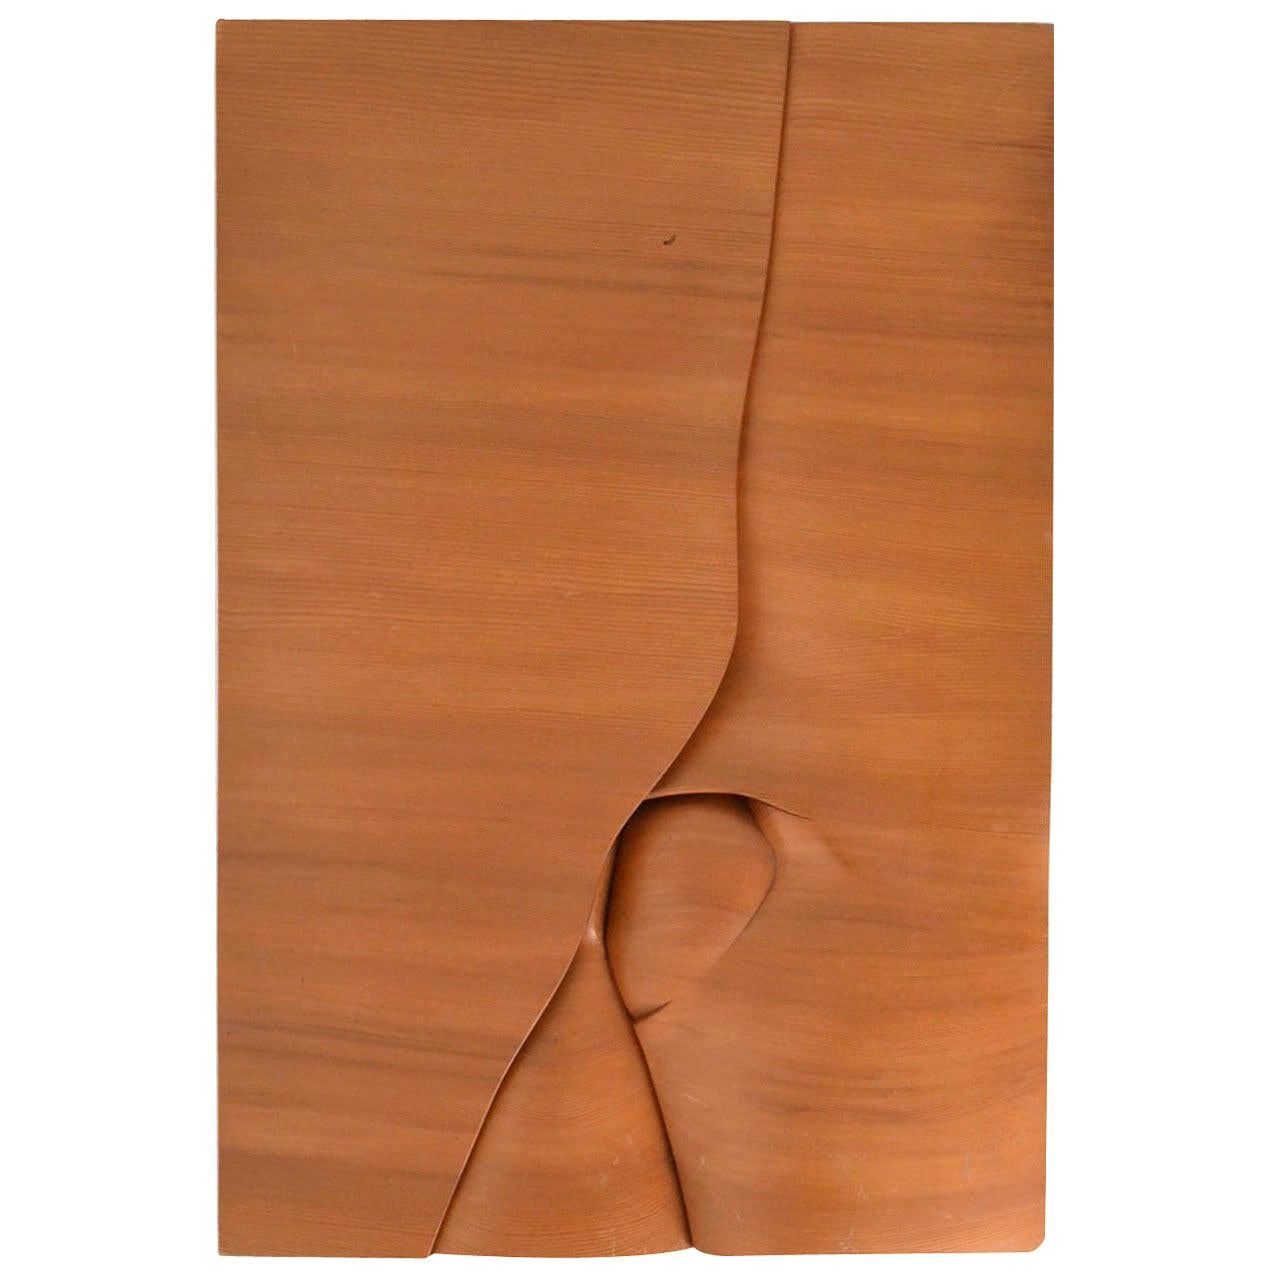 Abstract Wood Carved Relief Art